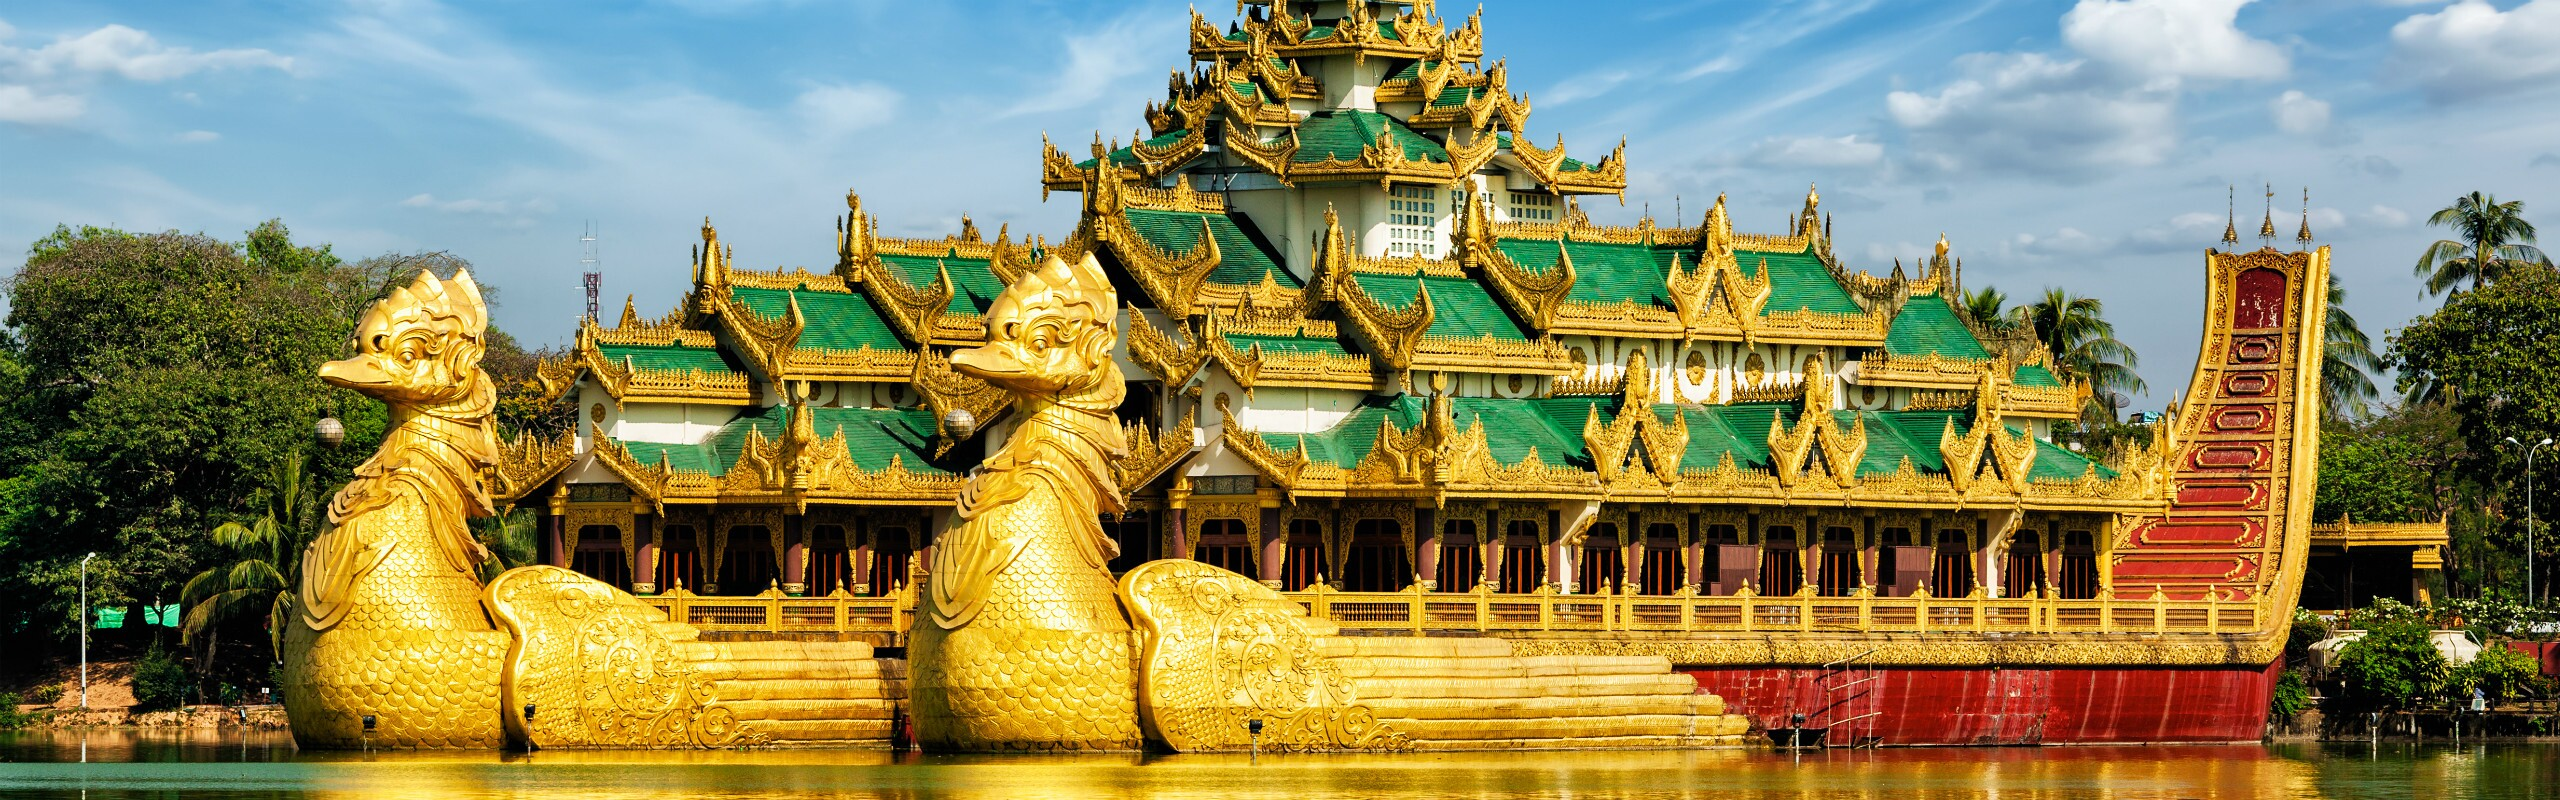 Top Hotels in Yangon - Luxury and Business Hotels